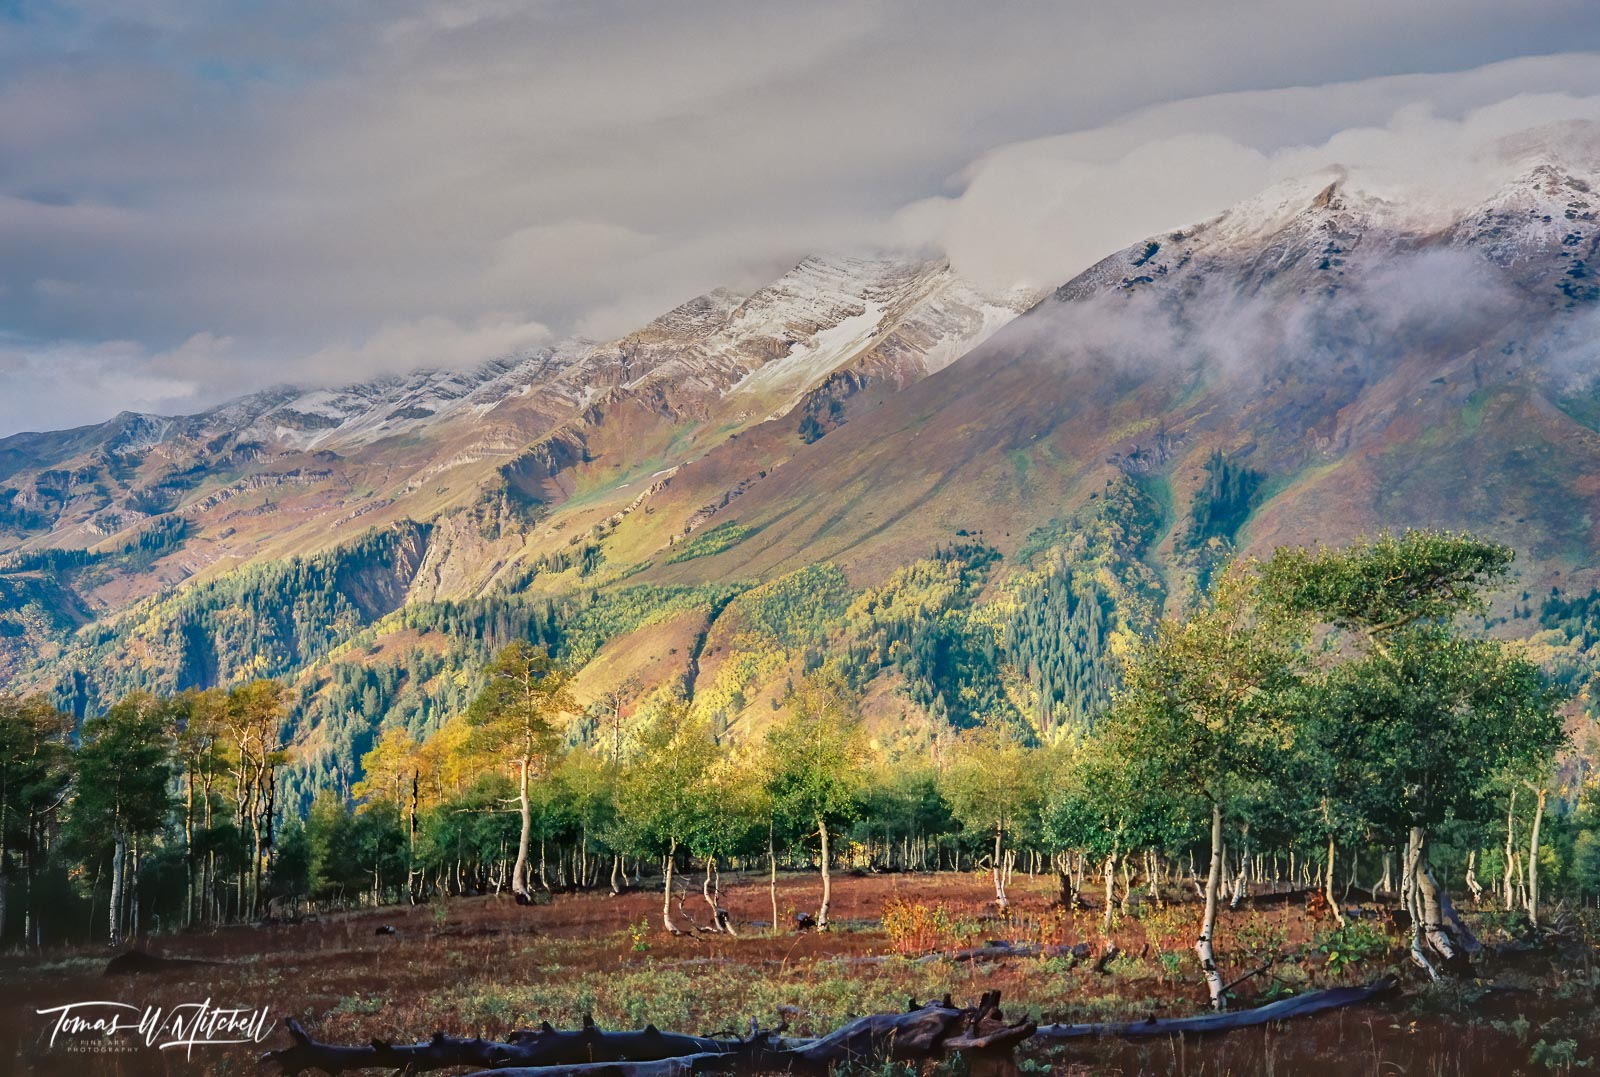 limited edition, fine art, prints, photograph, film, september, pentax, twisted, trees, aspens, snow, soft light, yellow, stormy, clouds, mountain, fall, photo